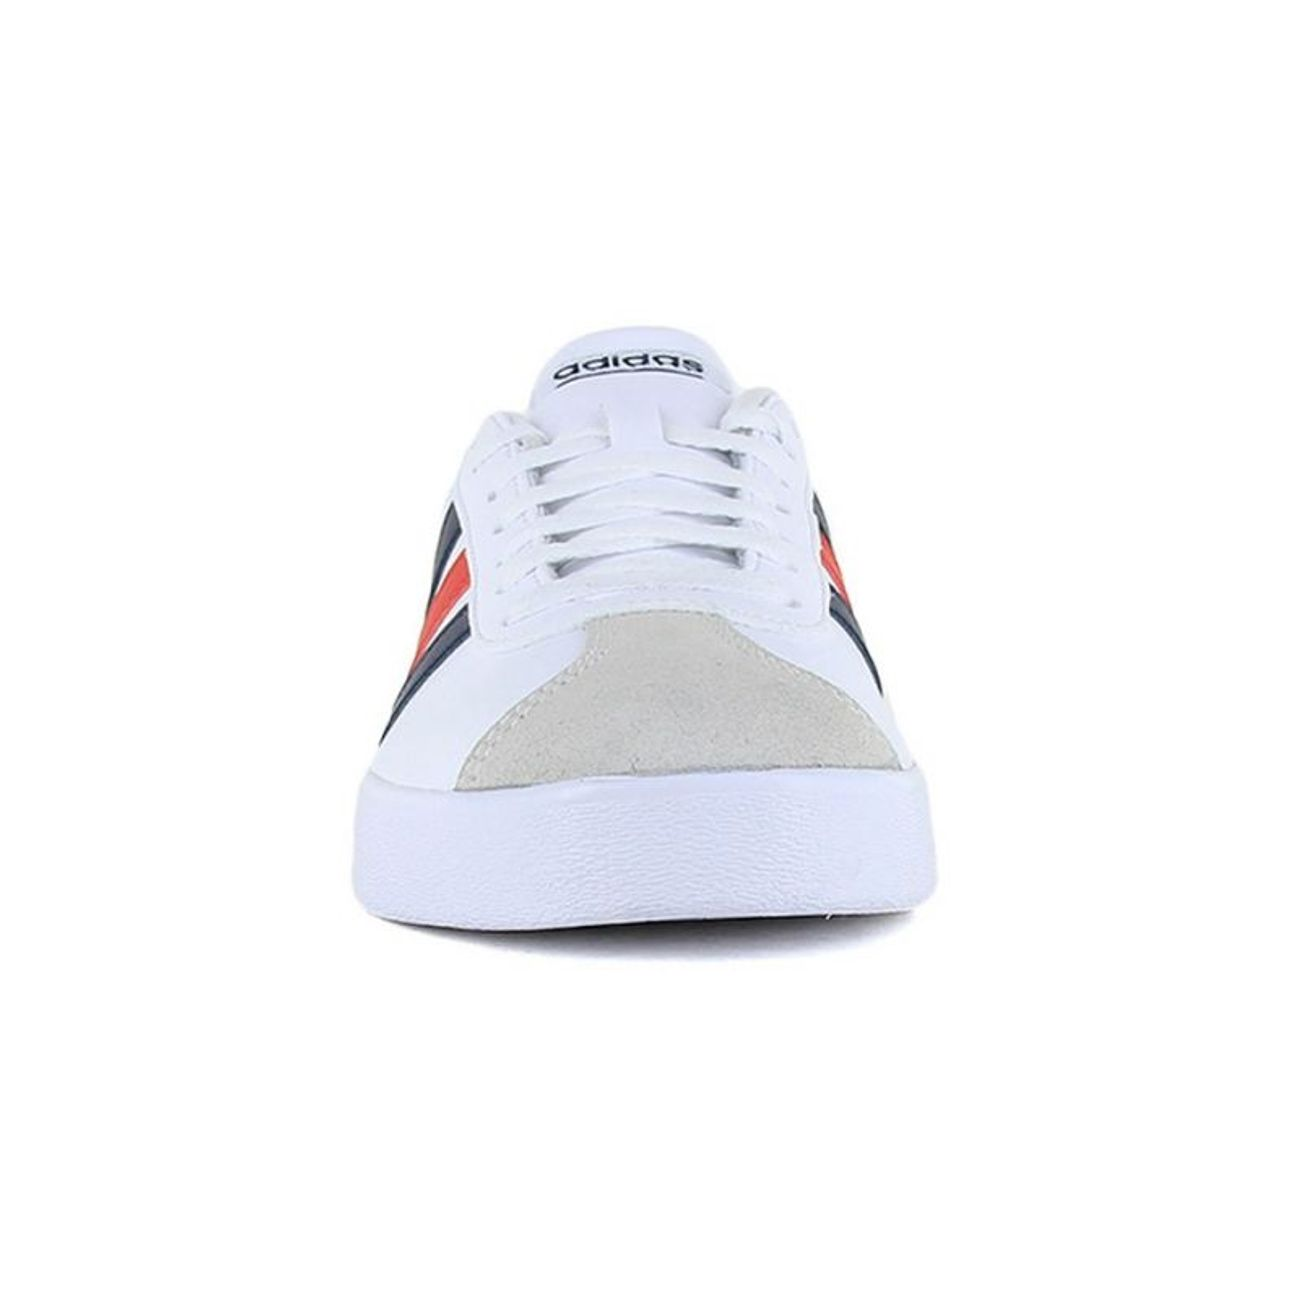 0a6114ee6874 ... Mode- Lifestyle homme ADIDAS NEO Adidas Neo Vl Court 2.0 blanc